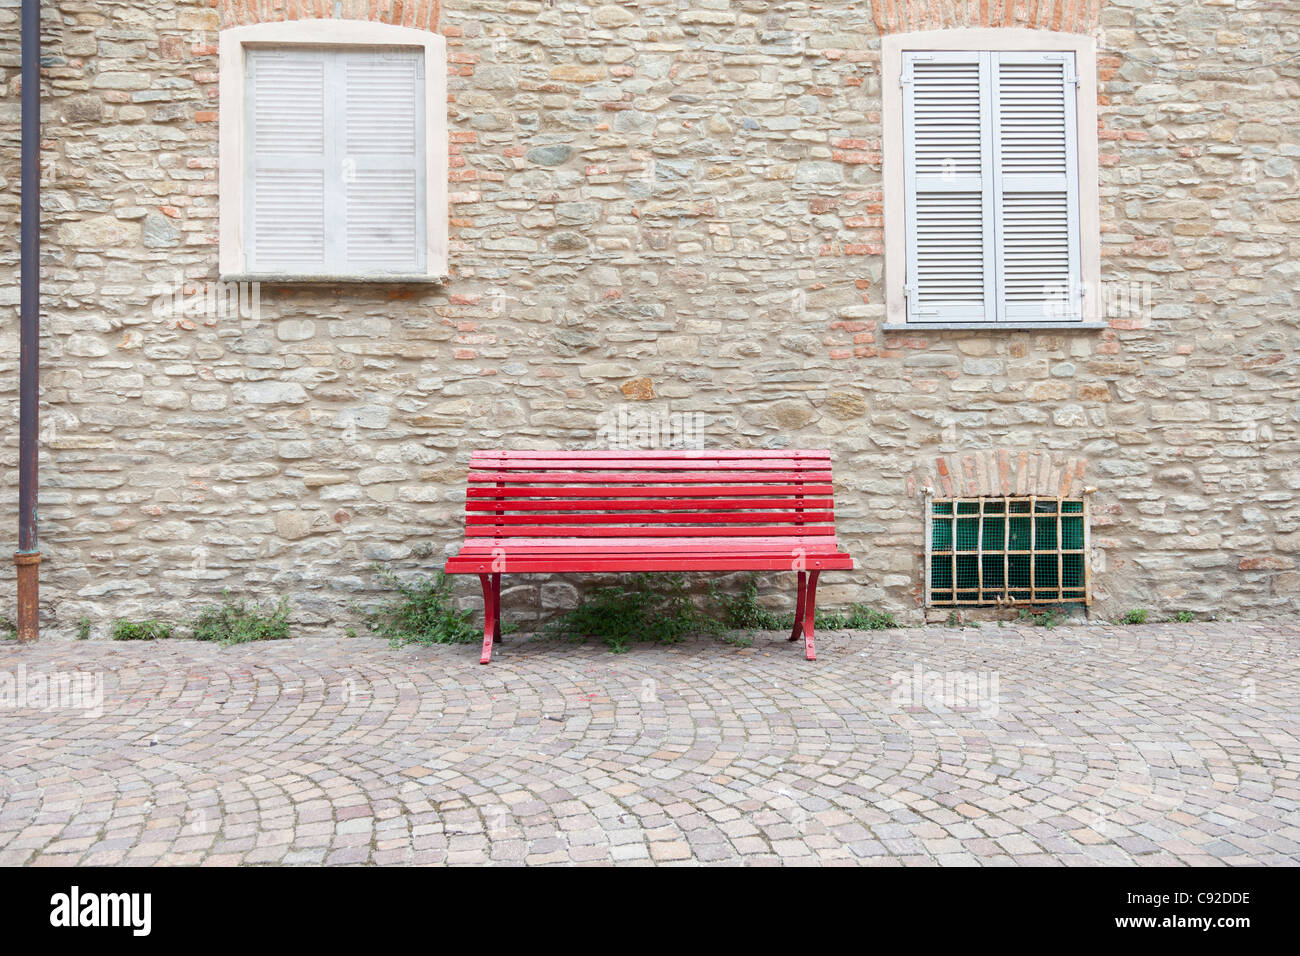 Red bench on cobbled village street - Stock Image